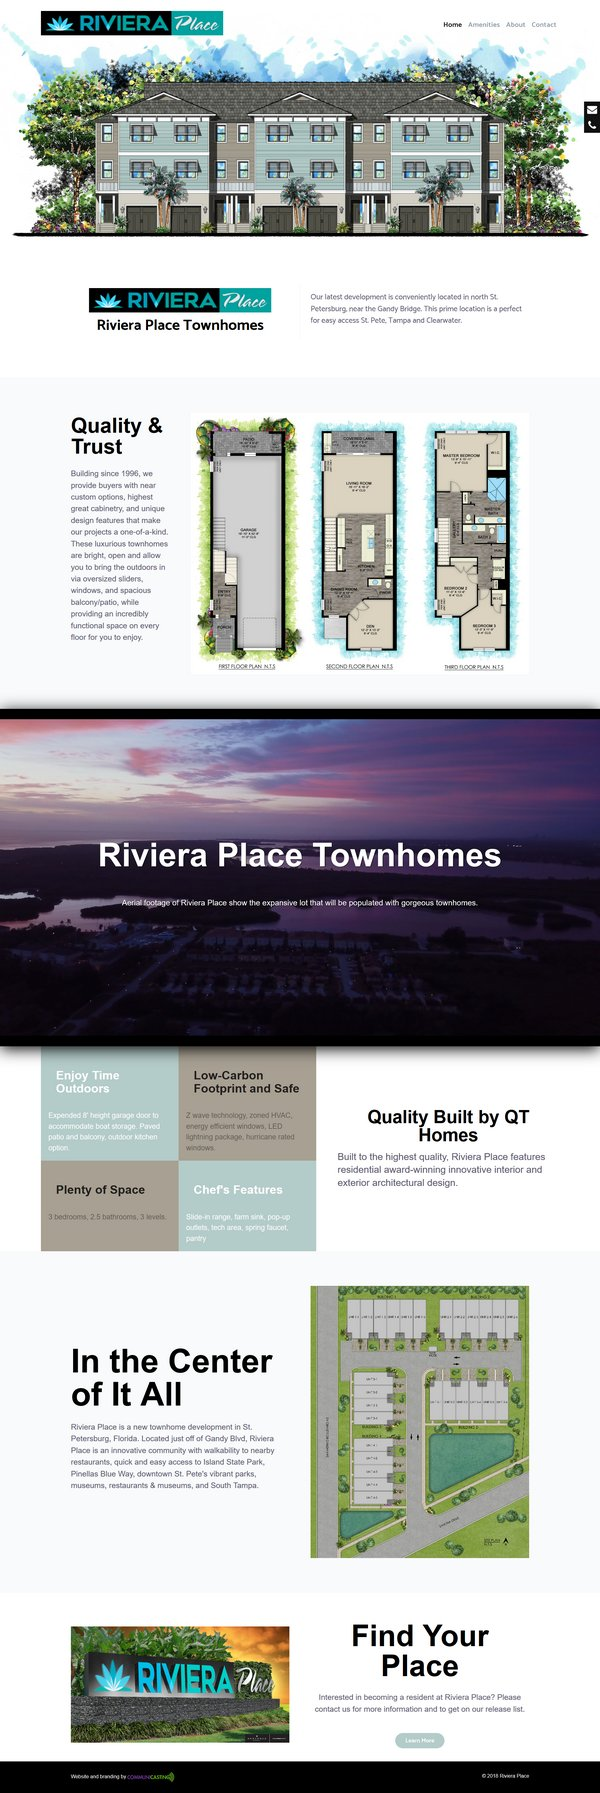 Riviera Place Townhomes